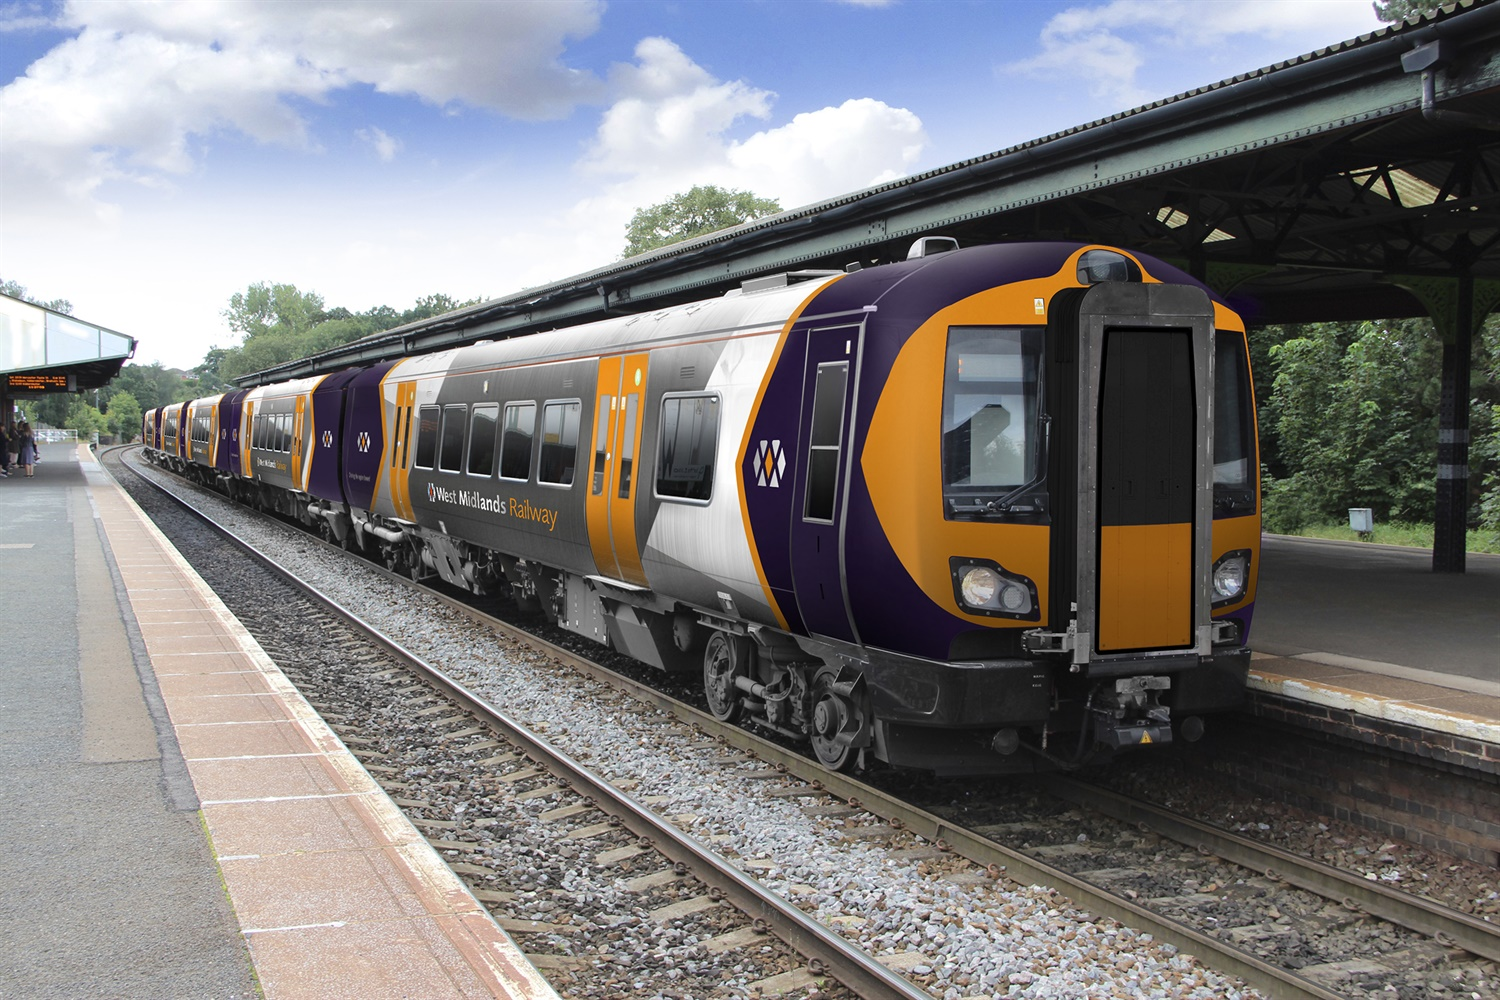 Street: West Midlands rail franchise award a 'game changer' for region